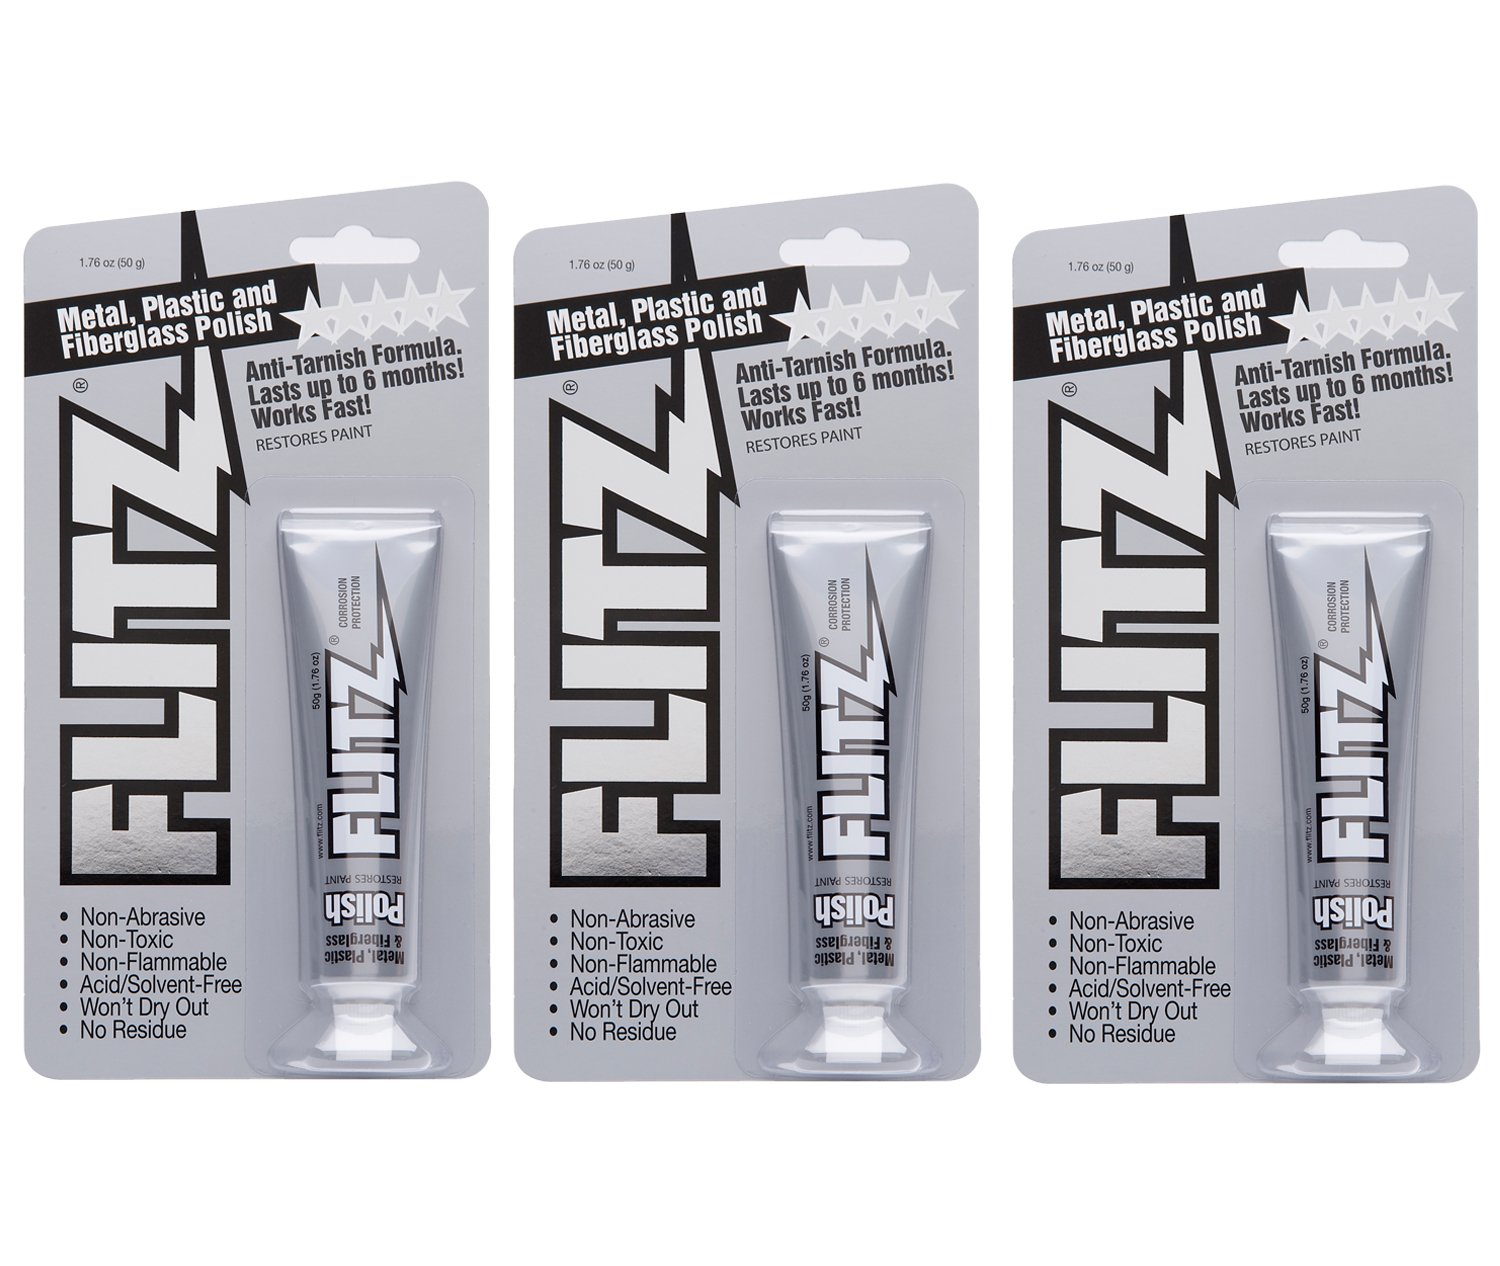 Flitz BP 03511-3A-3PK Metal, Plastic and Fiberglass Polish Paste, 1.76 oz. Blister Tube, 3-Pack